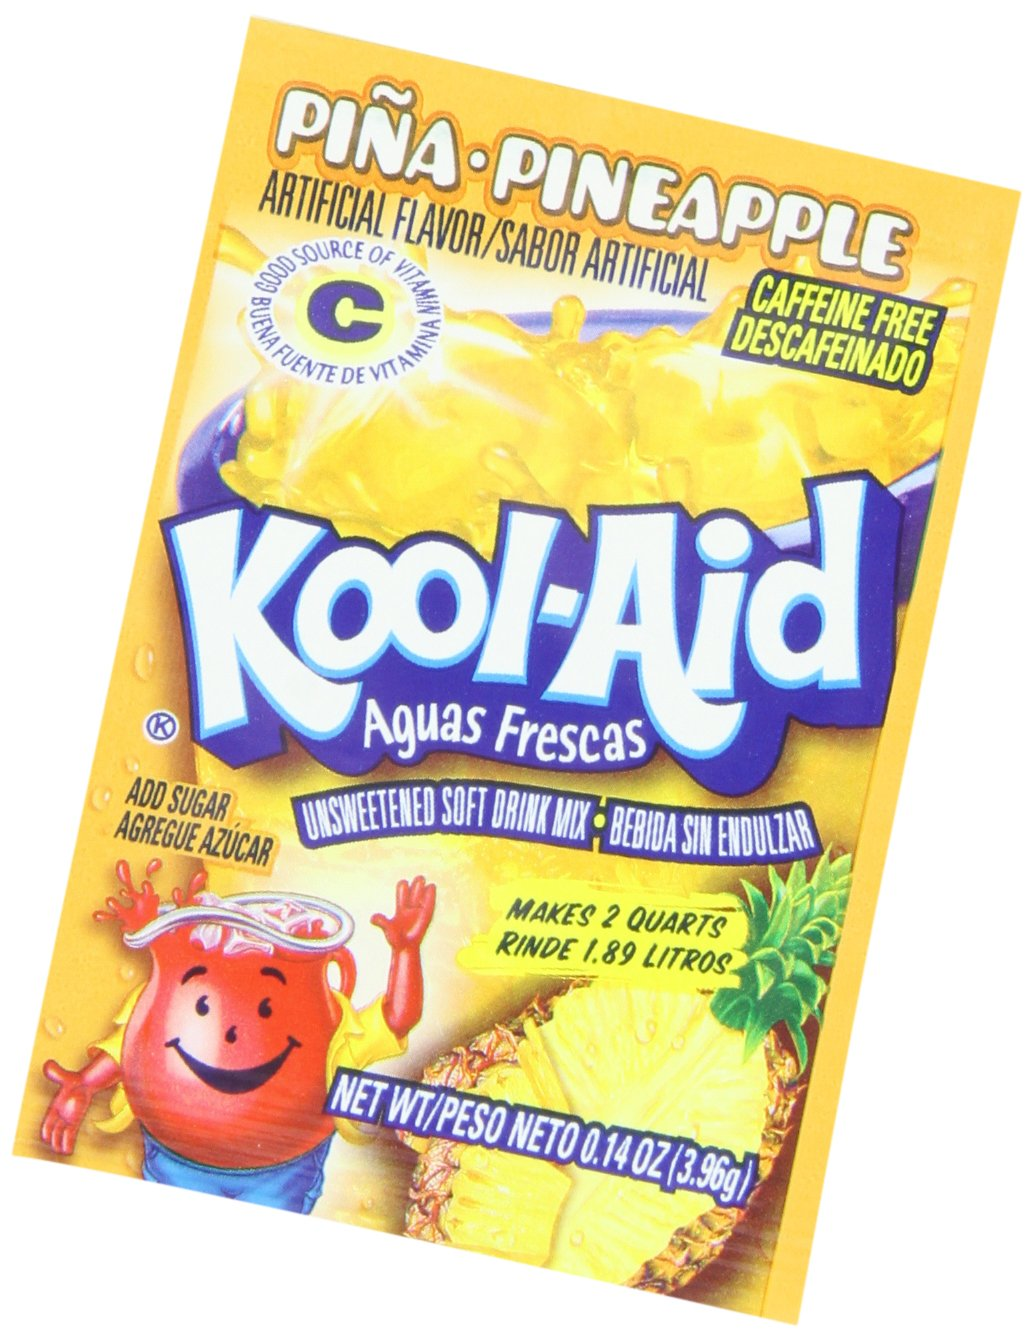 Amazon.com : Kool-Aid Aguas Frescas Pina Pineapple Unsweetened Soft Drink Mix, 0.14-Ounce Packets (Pack of 48) : Grocery & Gourmet Food